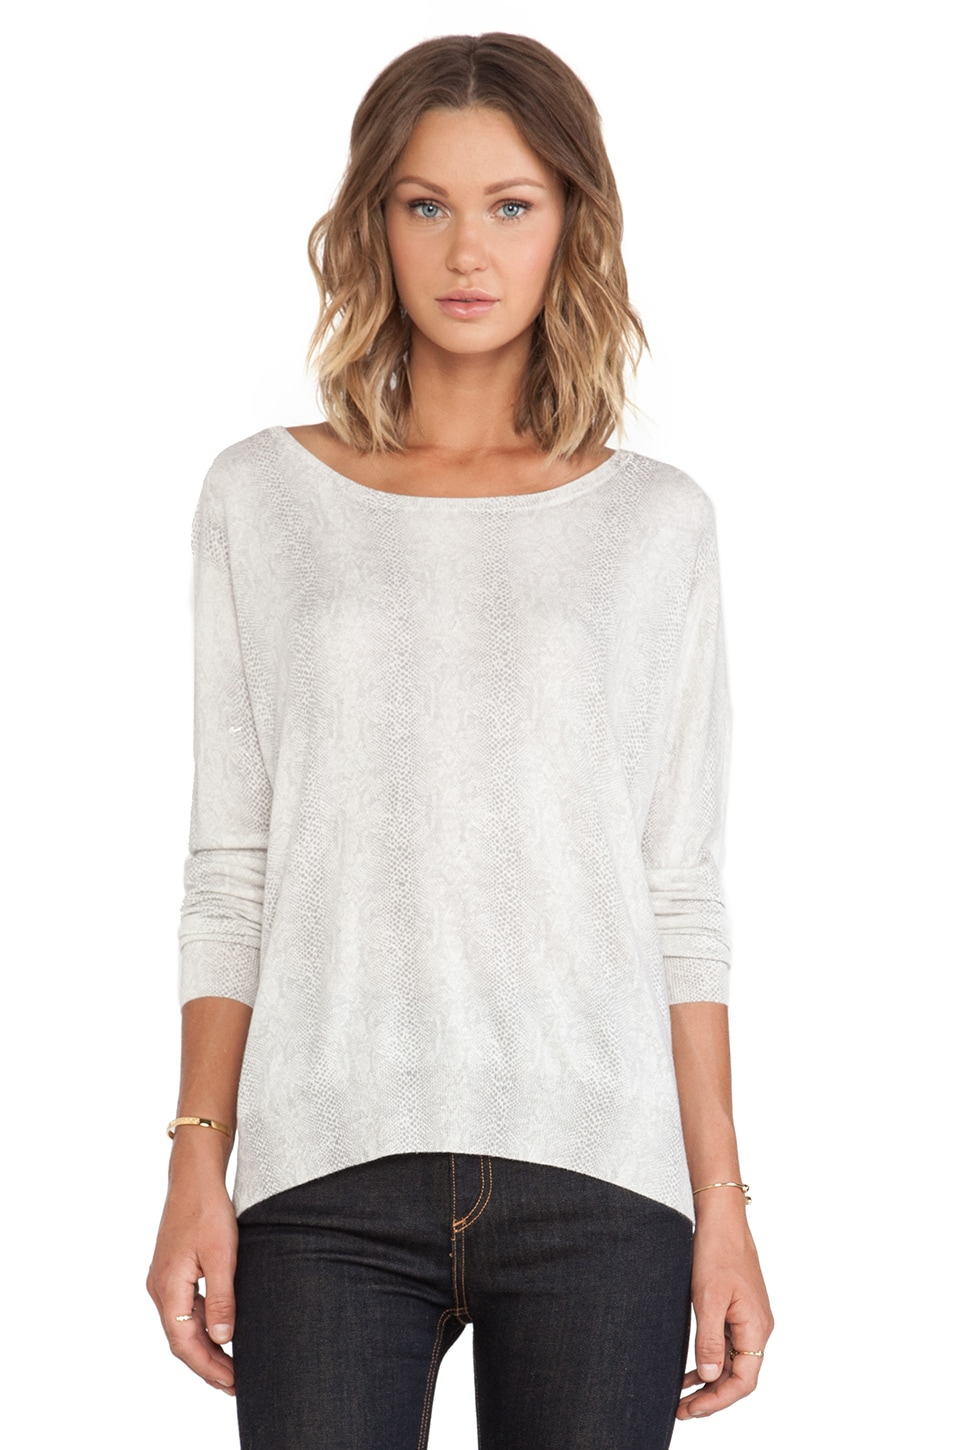 Joie Emari E Sweater in Marble